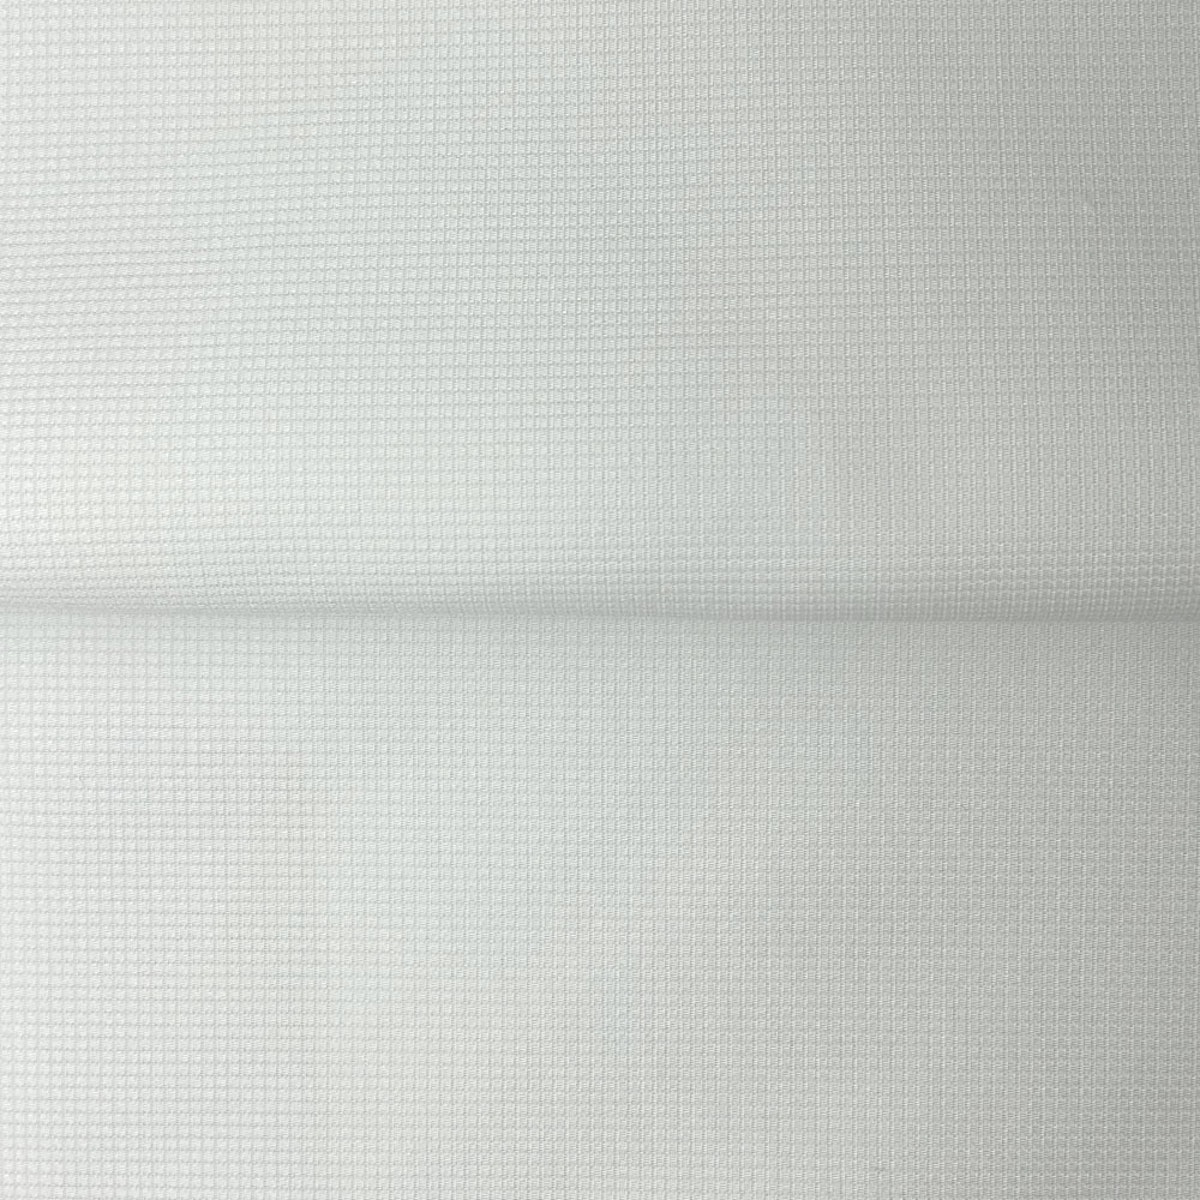 InStitchu Shirt Fabric 21